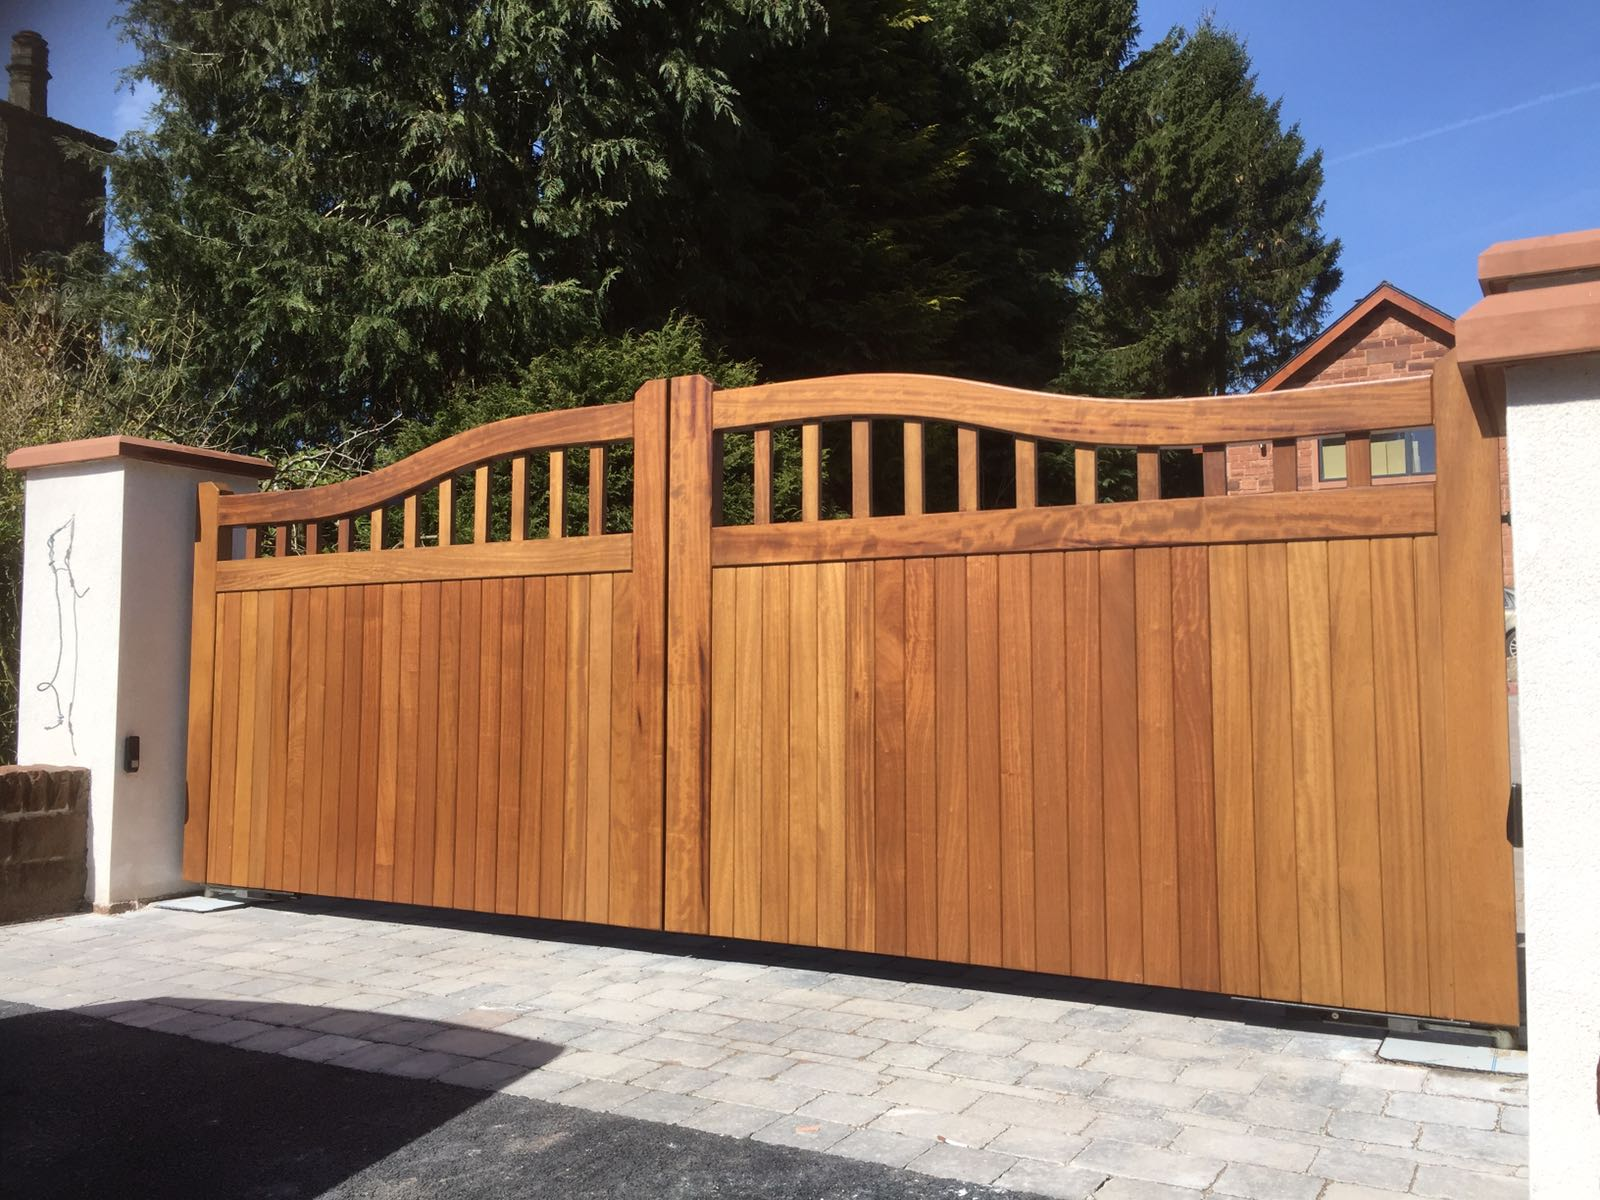 Iroko hardwood chester design driveway gates in natural finish